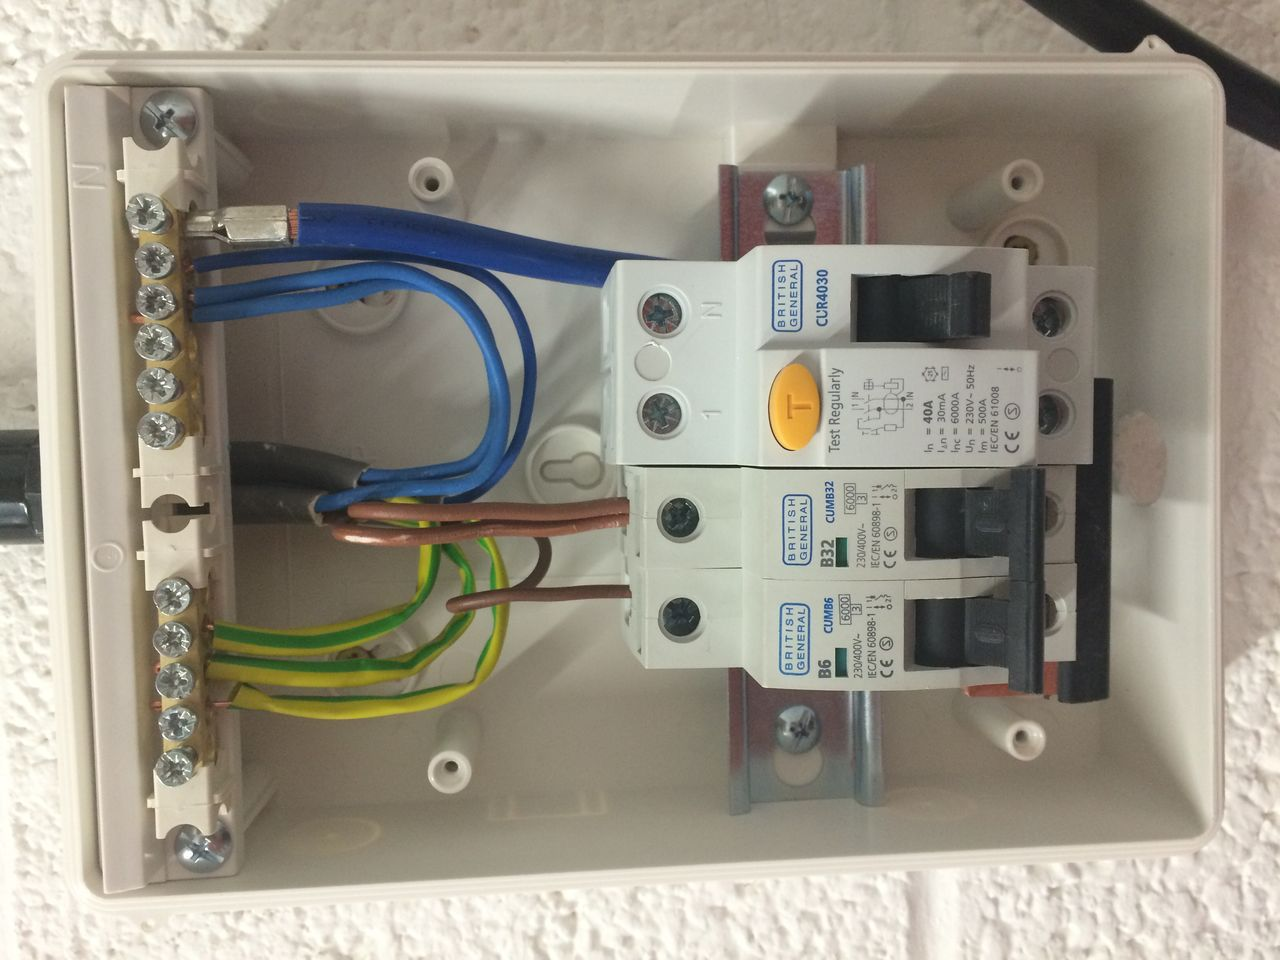 hight resolution of fuse box in garage wiring diagram expert old fuse box in garage fuse box in garage